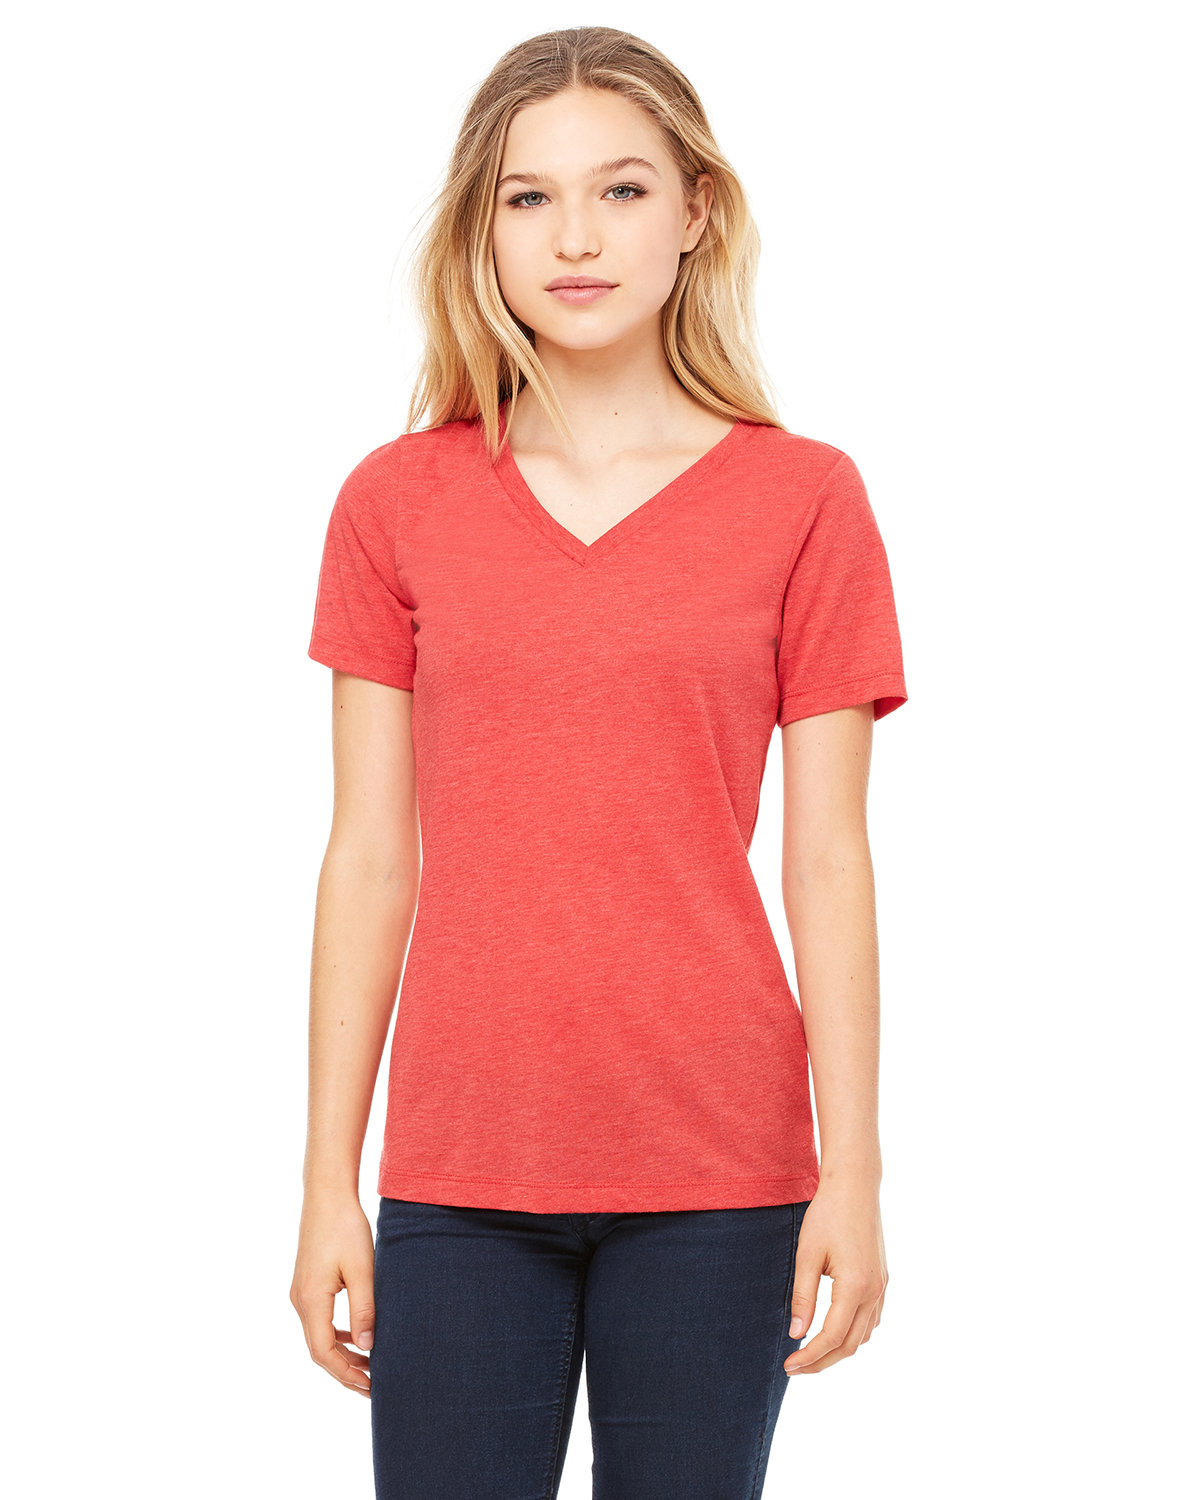 Bella + Canvas Ladies' Relaxed Jersey V-Neck T-Shirt RED TRIBLEND